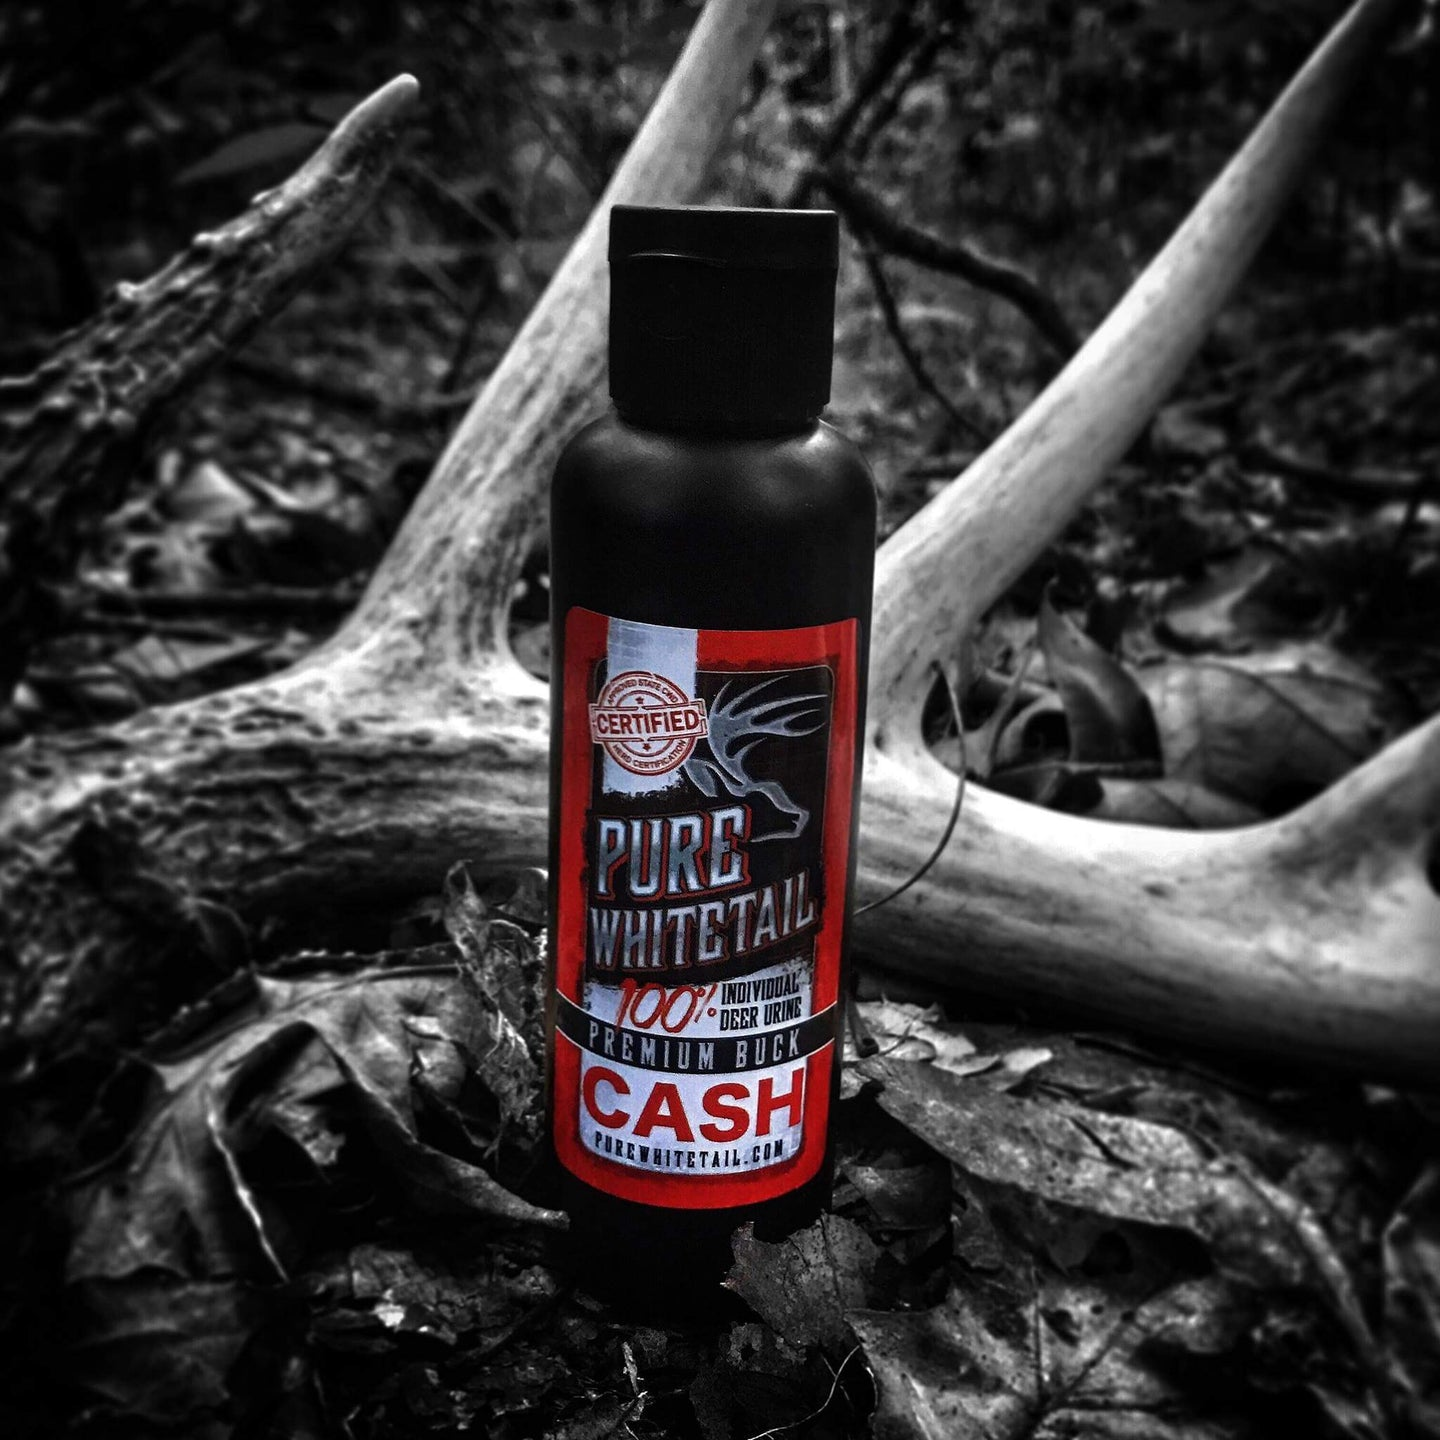 Pure Whitetail Ultra Premium Buck Urine